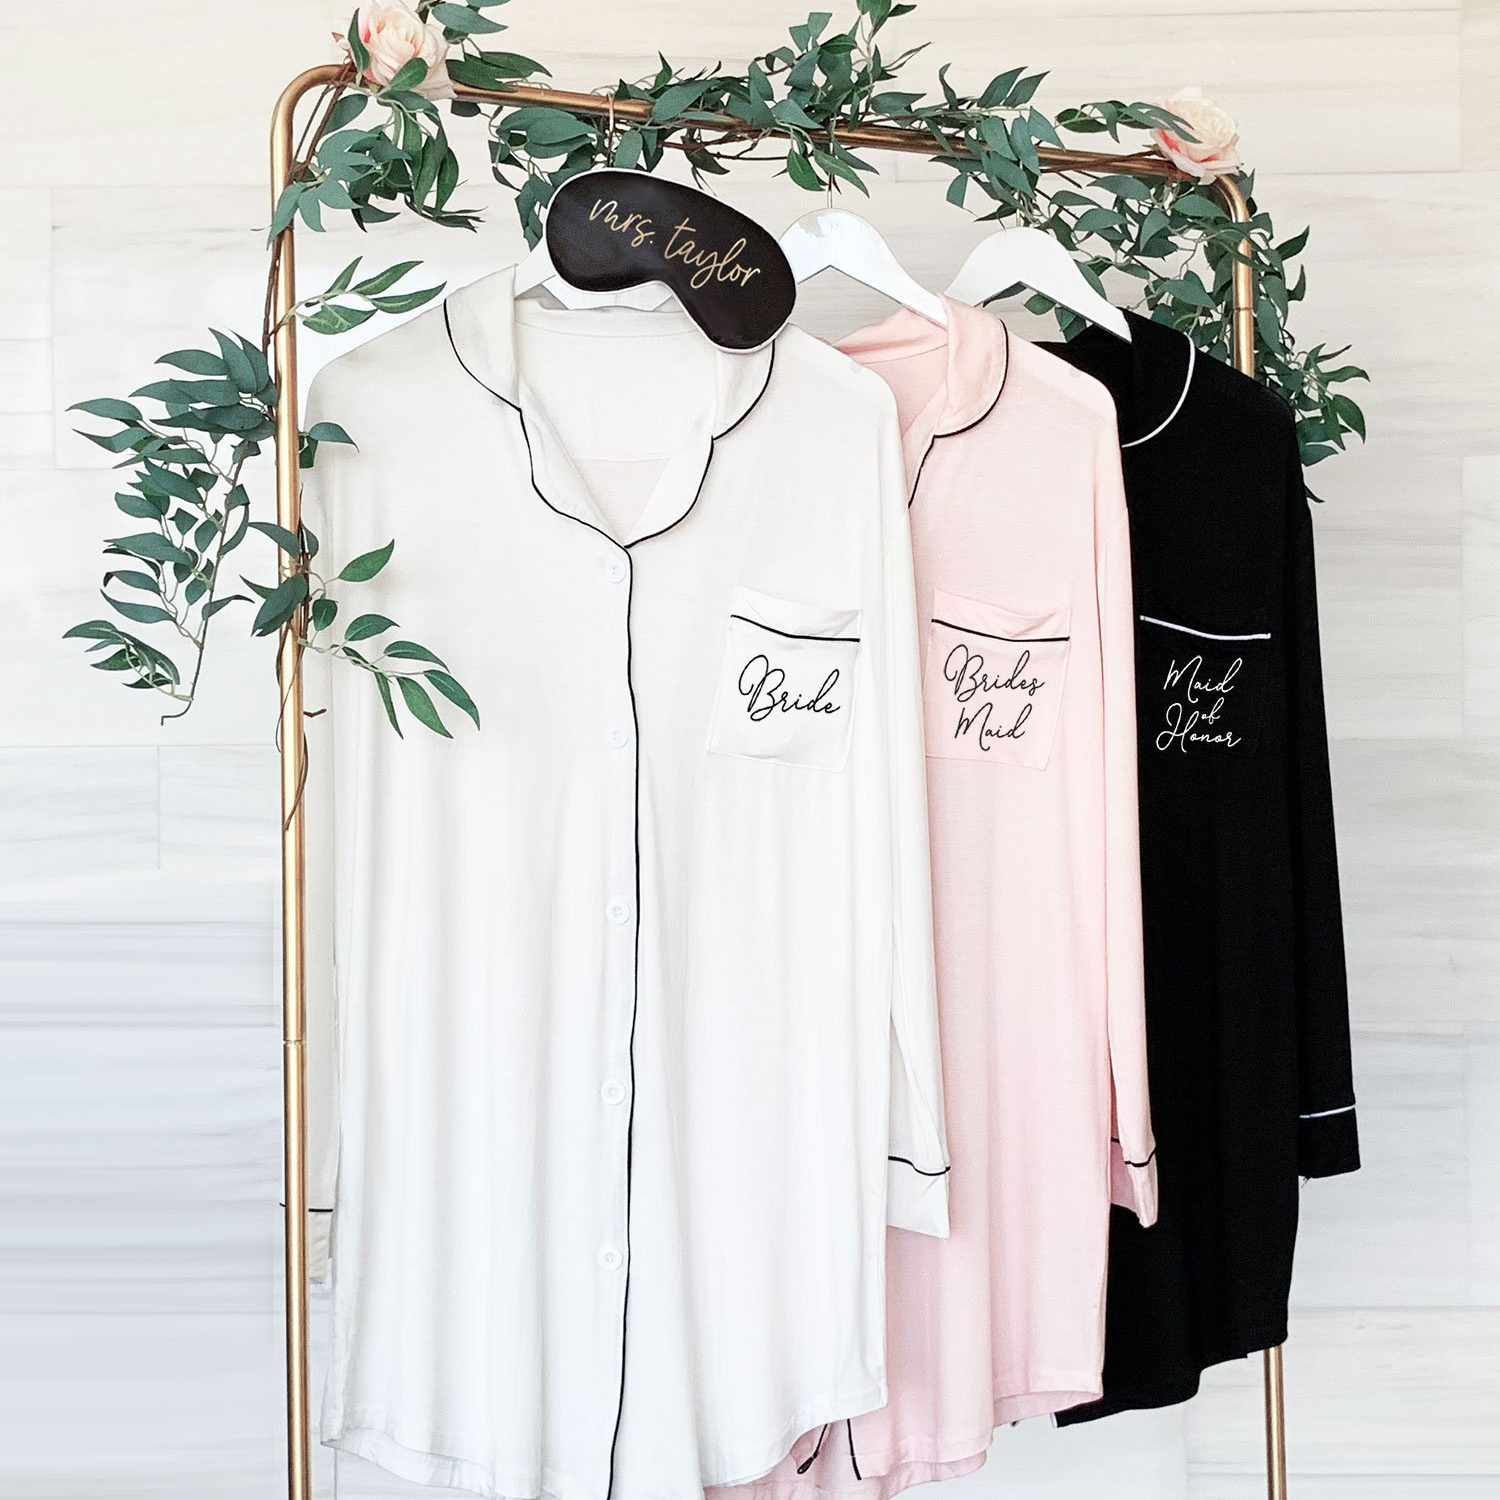 931d84f5b396a 13 Getting Ready Outfits for You and Your Bridesmaids—That Aren't Robes!